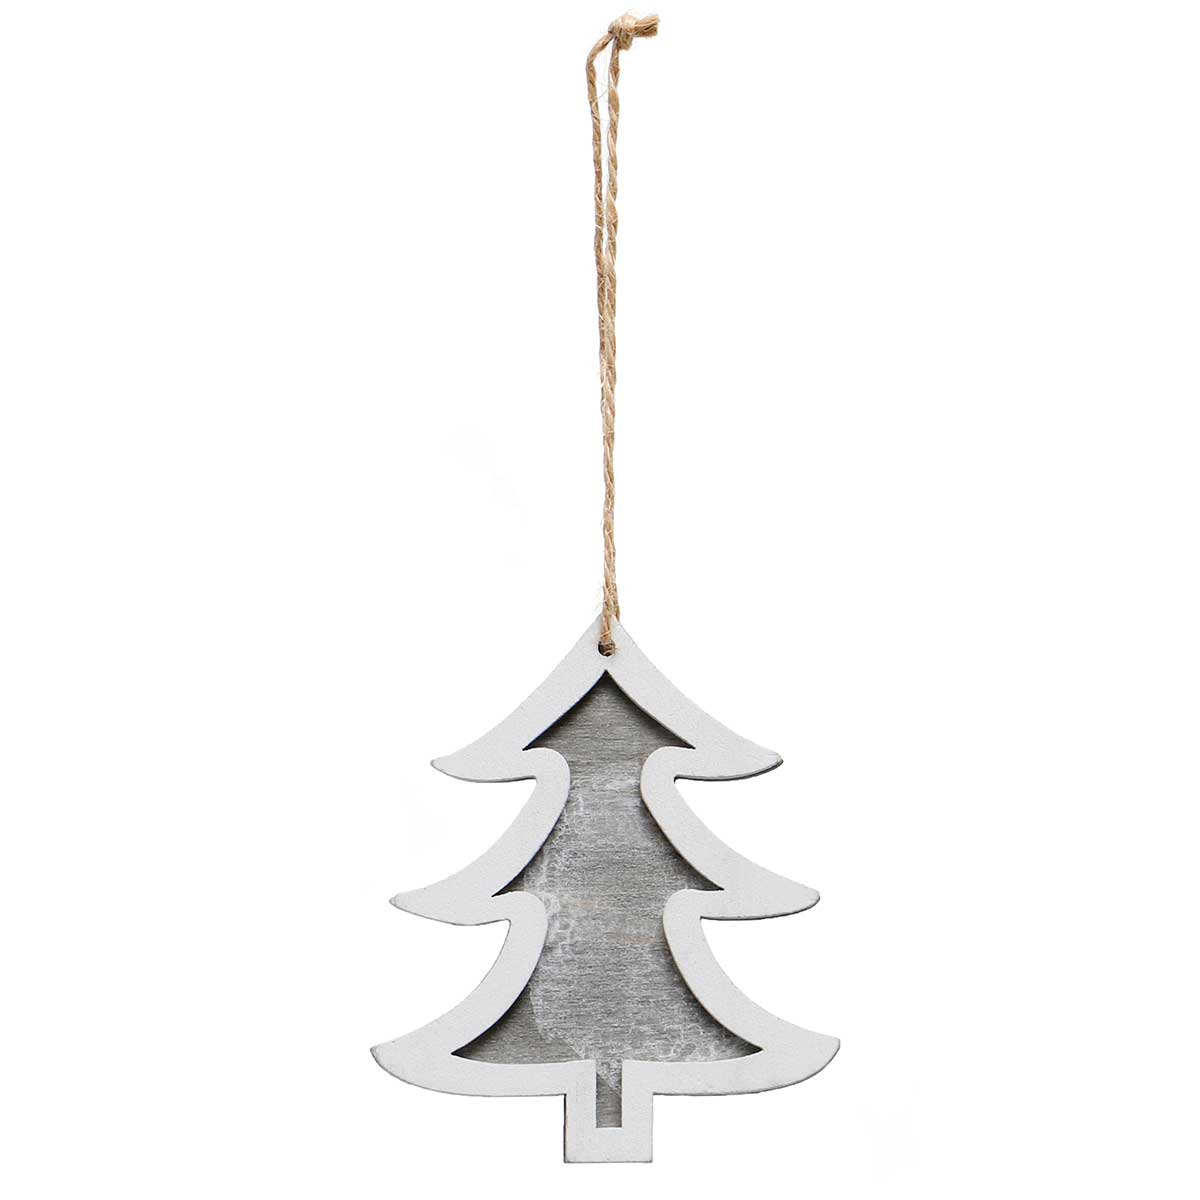 GREY/WHITE WOOD TREE